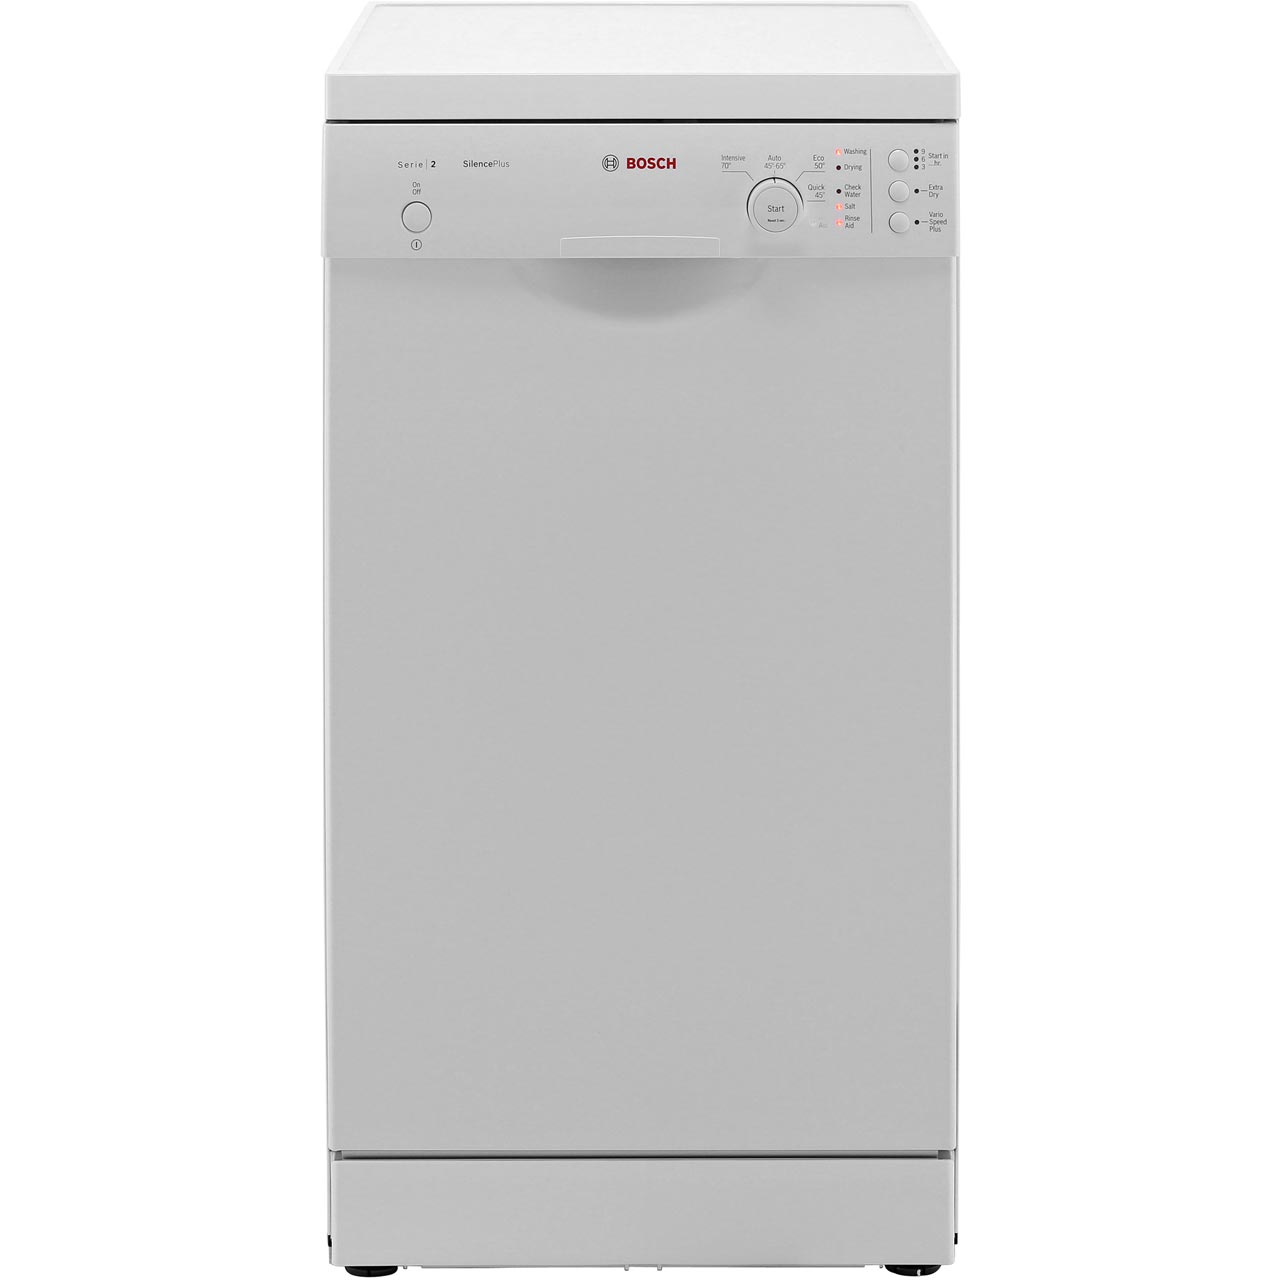 bosch serie 2 sps24cw00g slimline dishwasher review. Black Bedroom Furniture Sets. Home Design Ideas